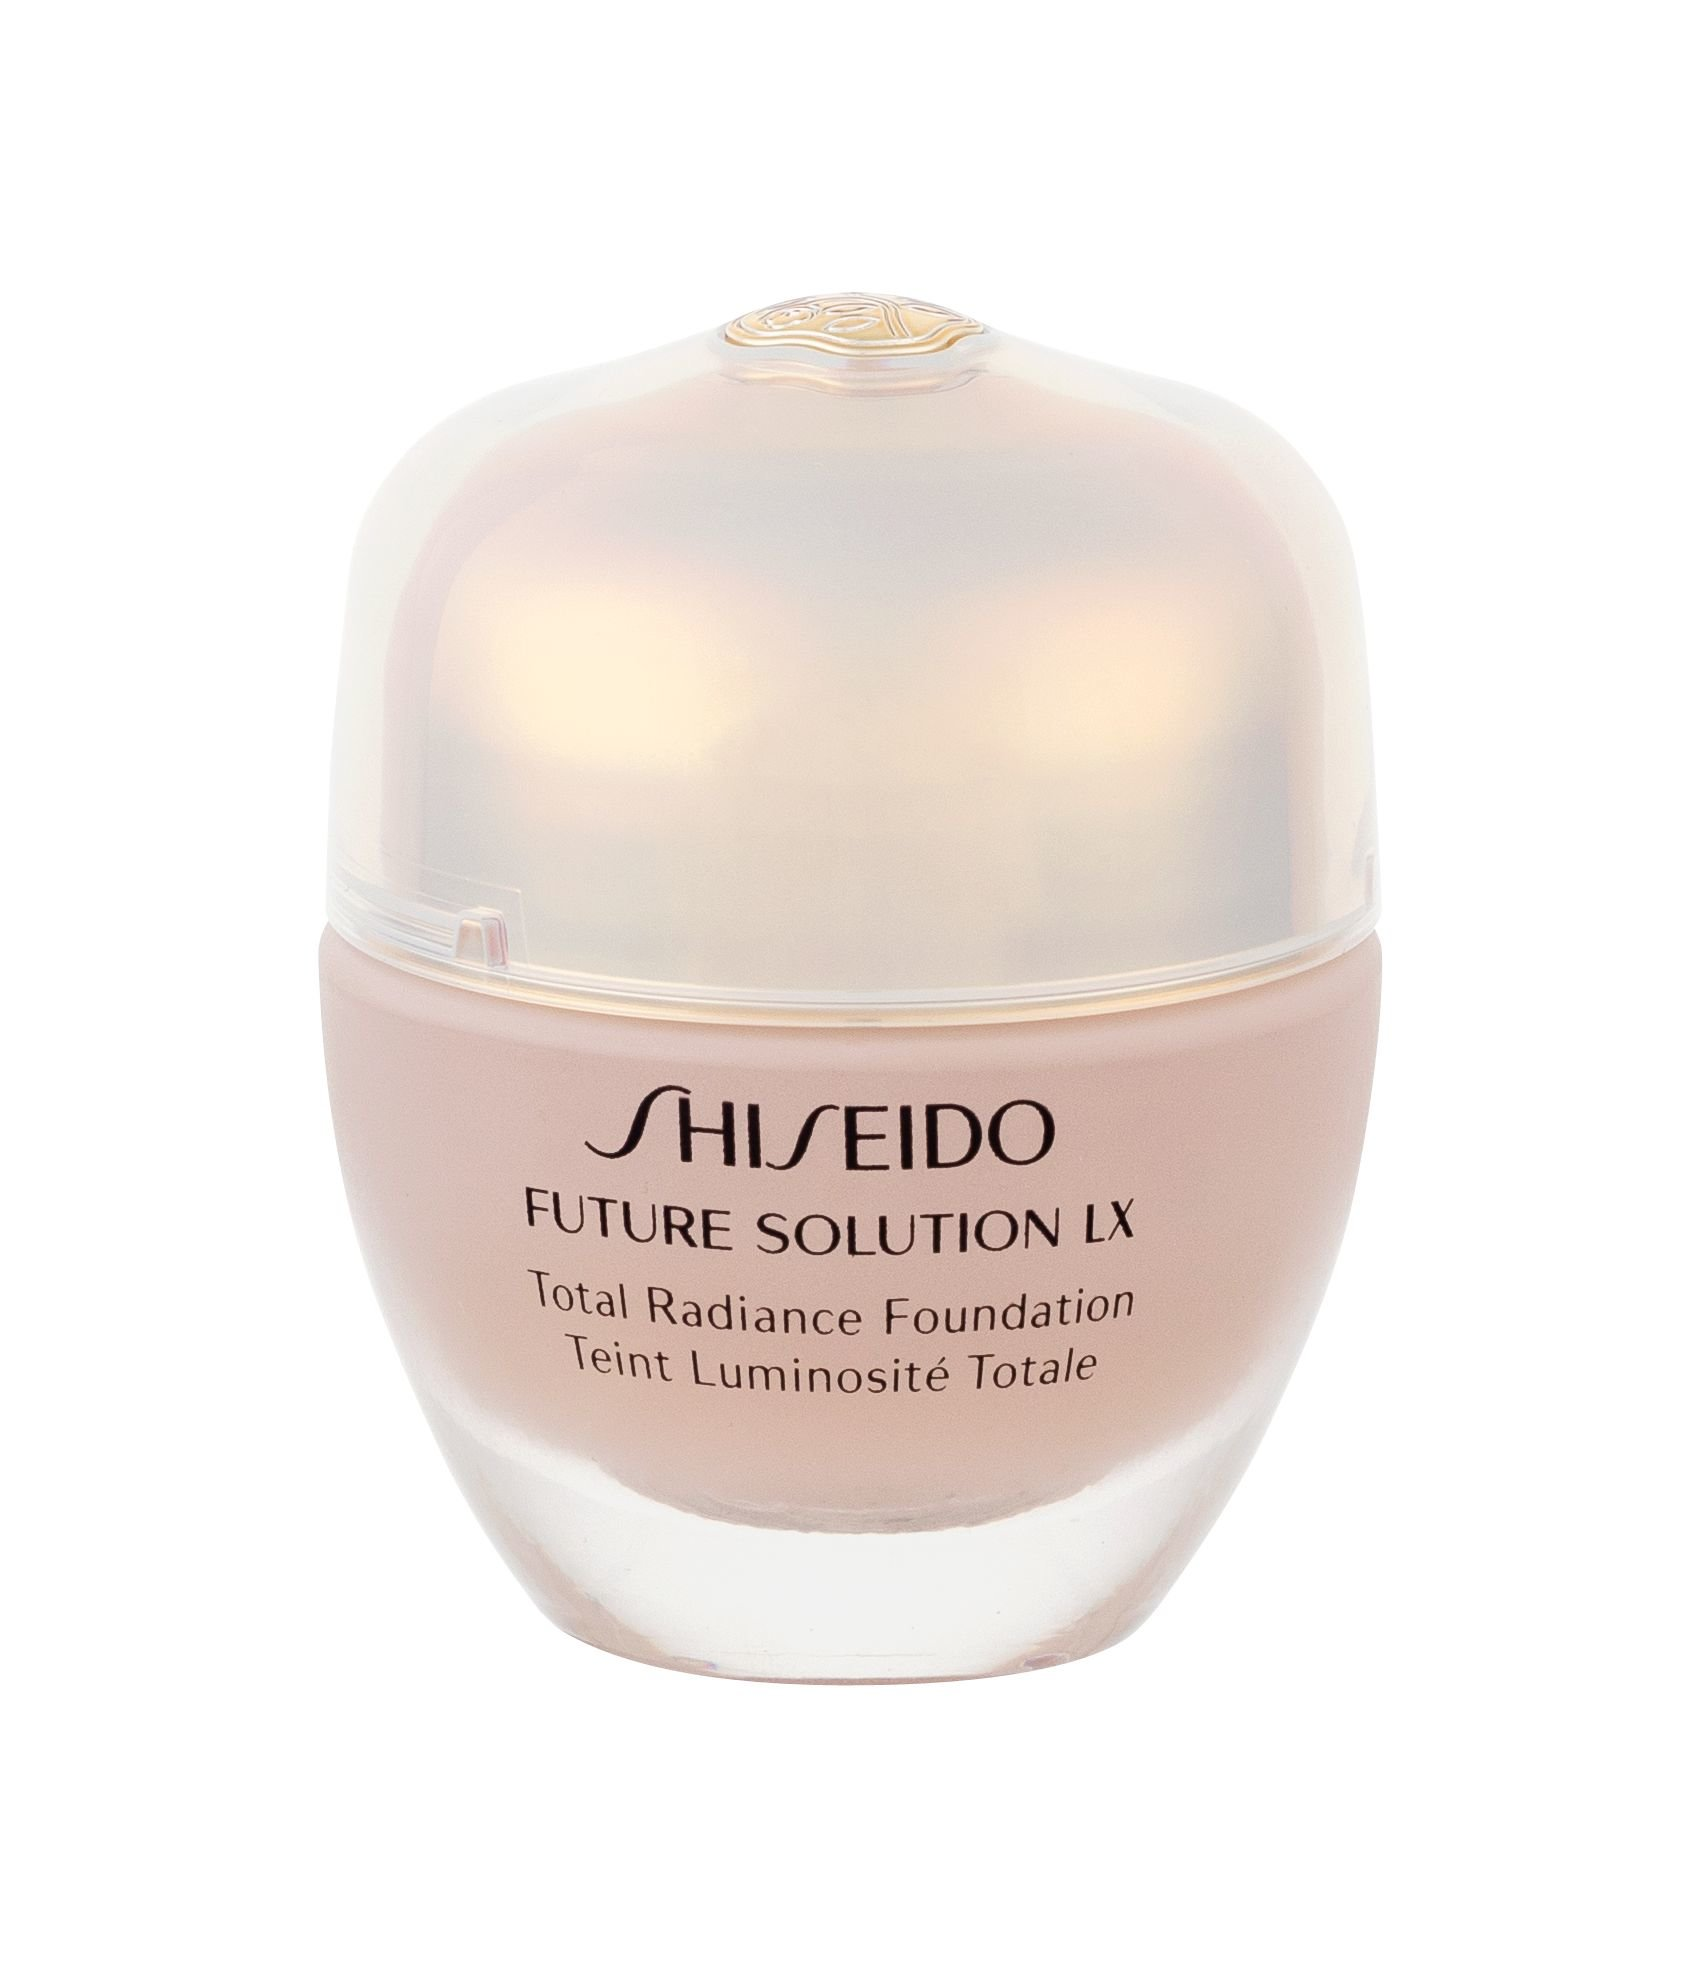 Shiseido Future Solution LX Cosmetic 30ml l40 Natural Fair Ivory